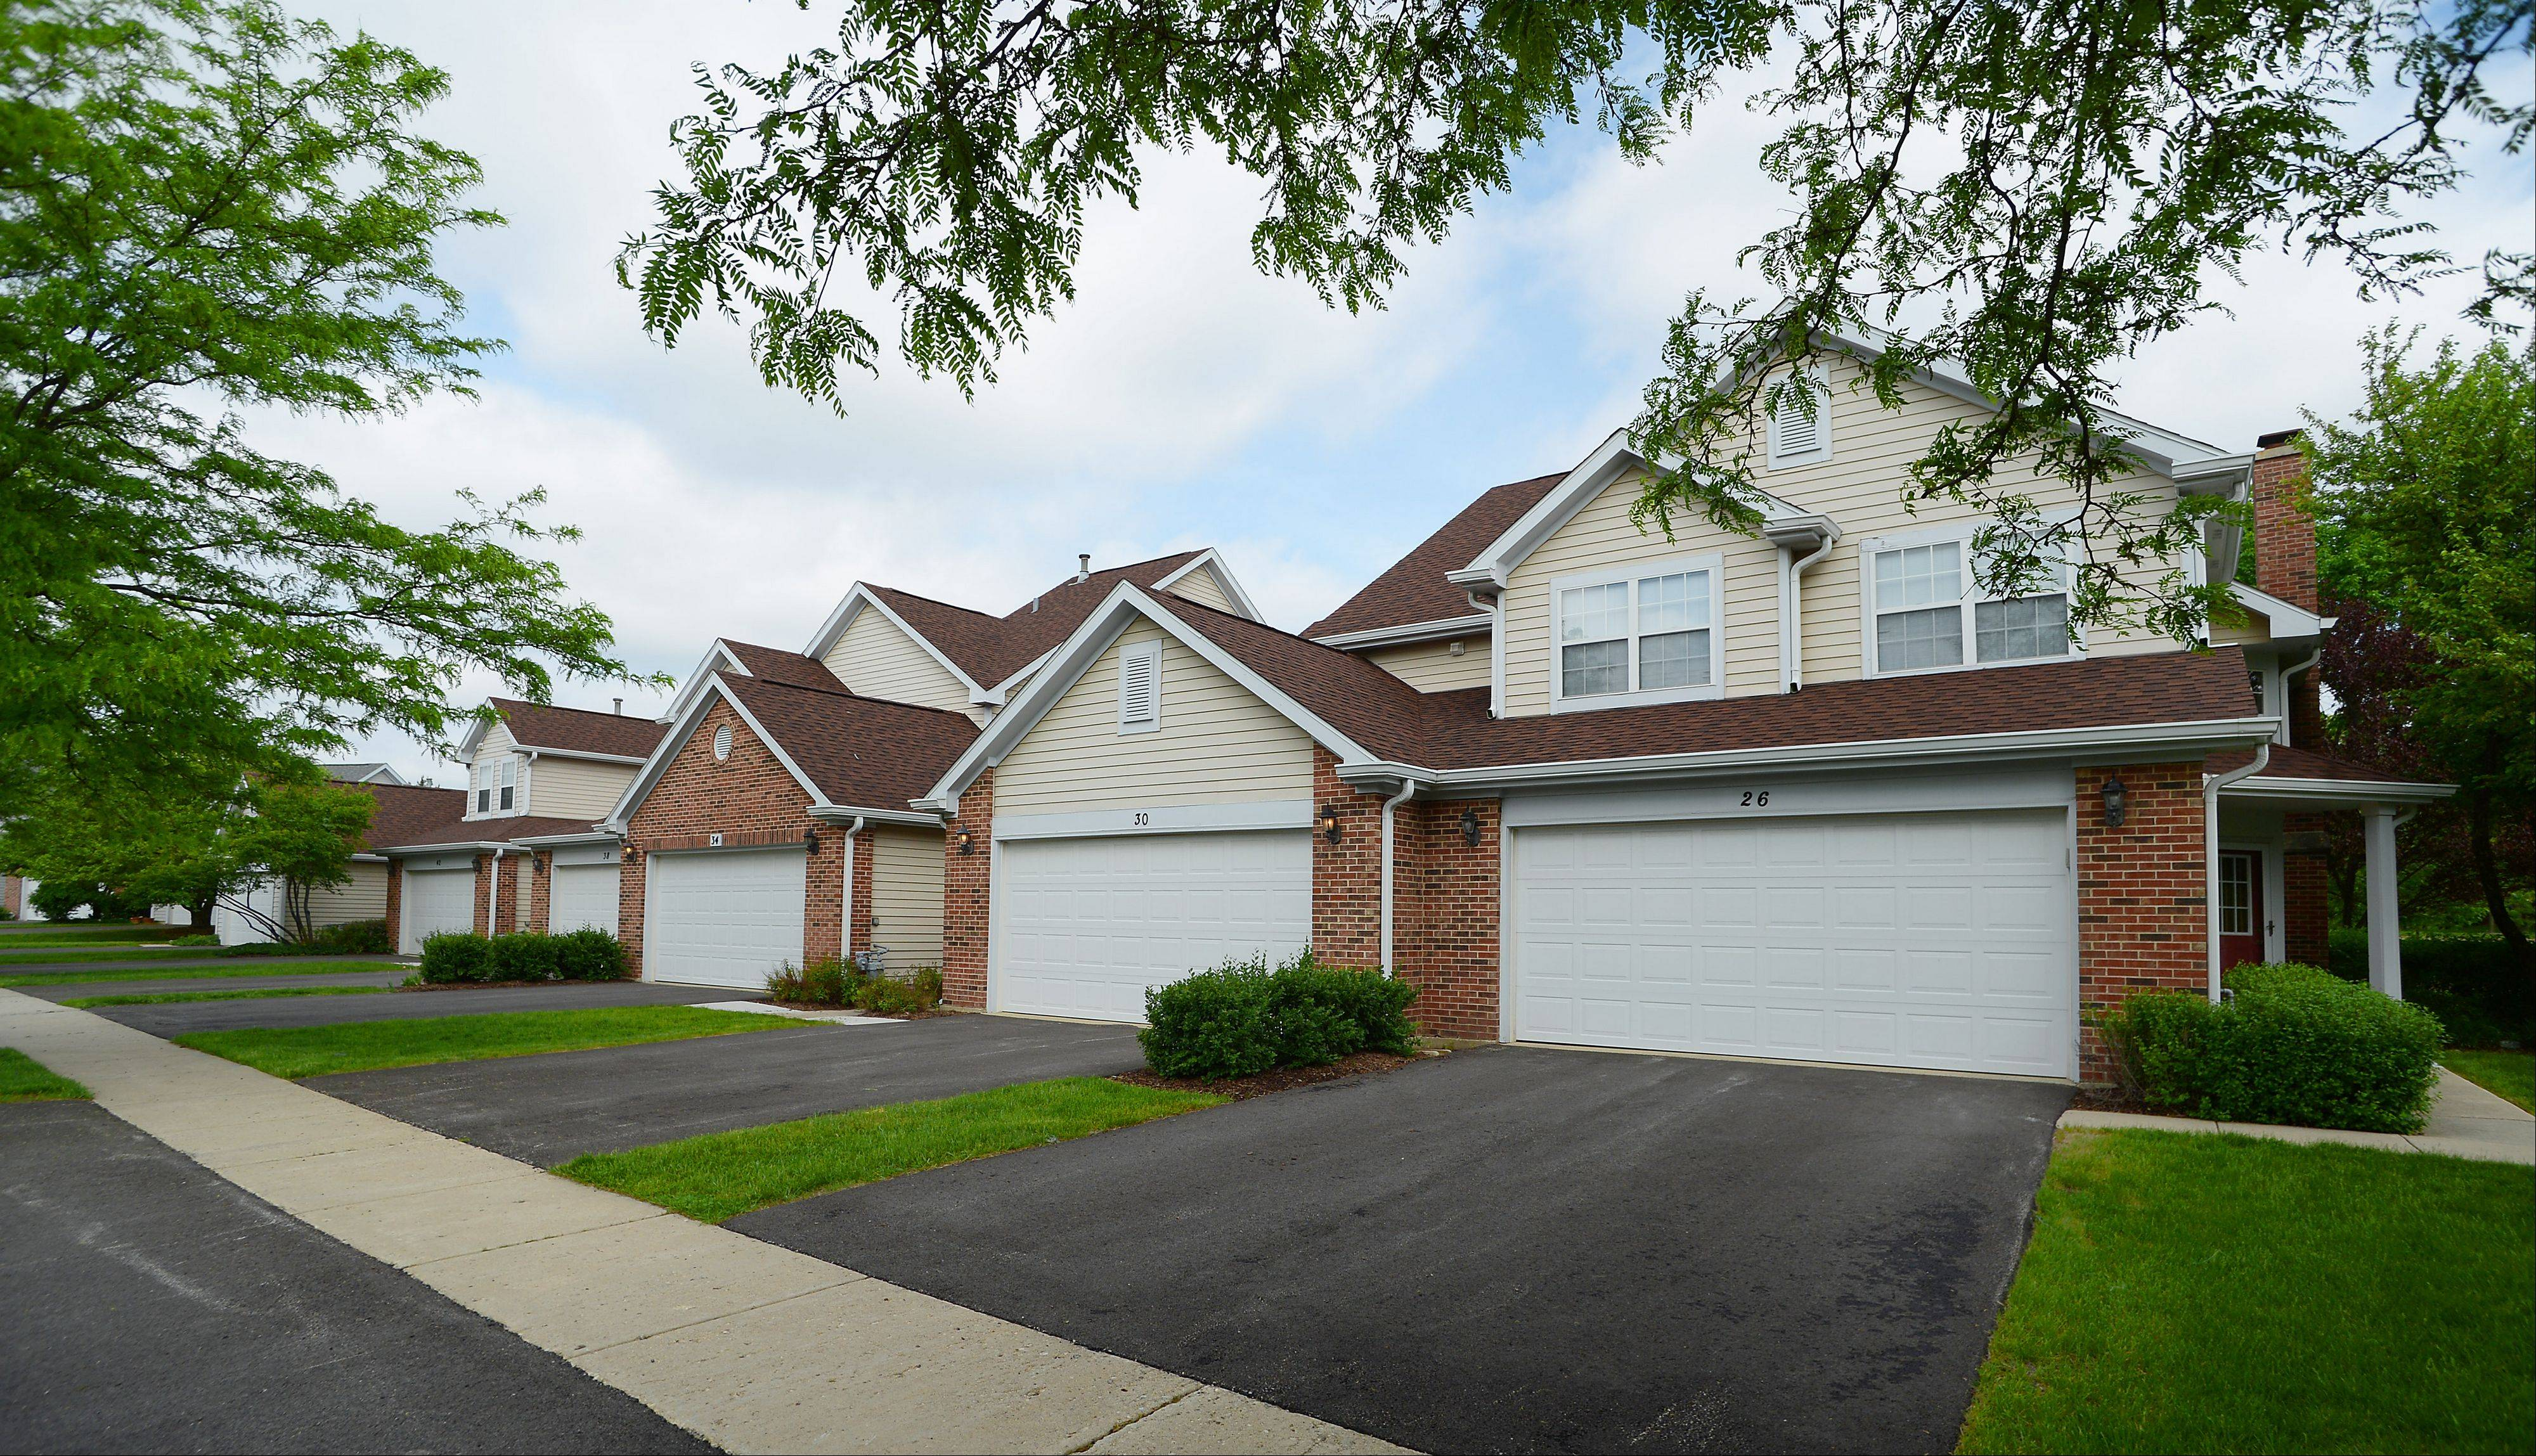 Autumn Ridge is a community of 140 townhouses in Schaumburg.